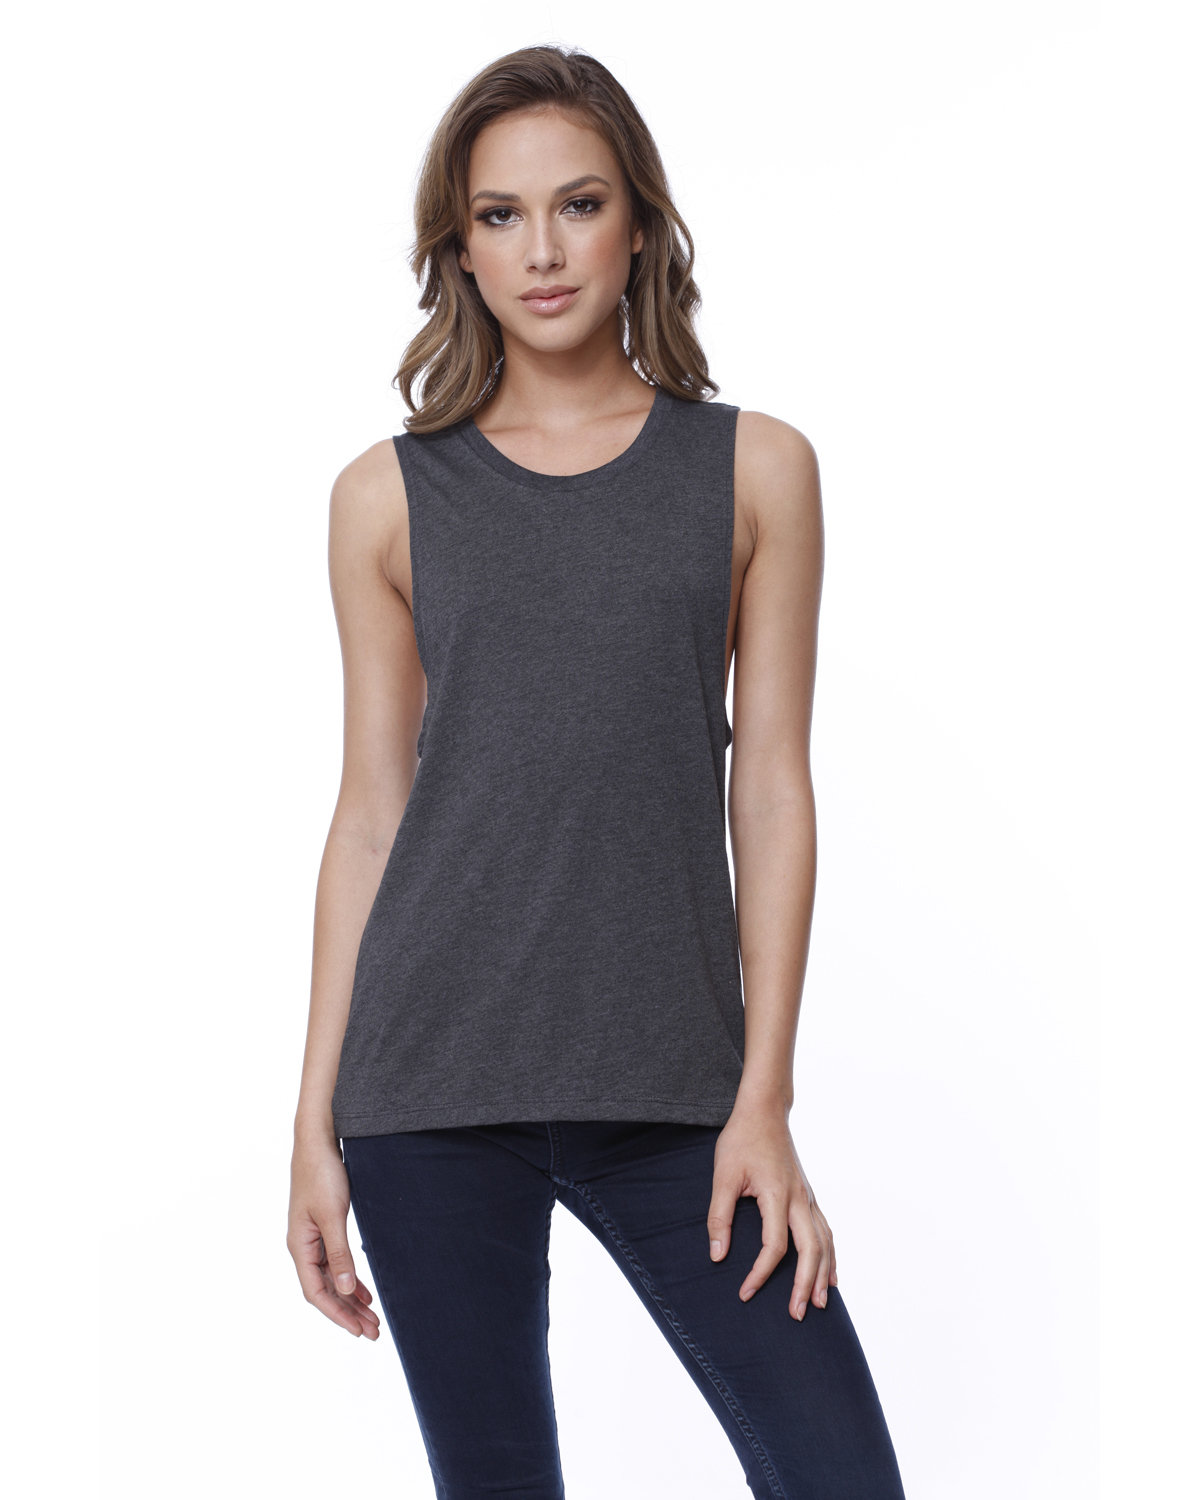 StarTee Drop Ship Ladies' Cotton Muscle T-Shirt CHARCOAL HEATHER